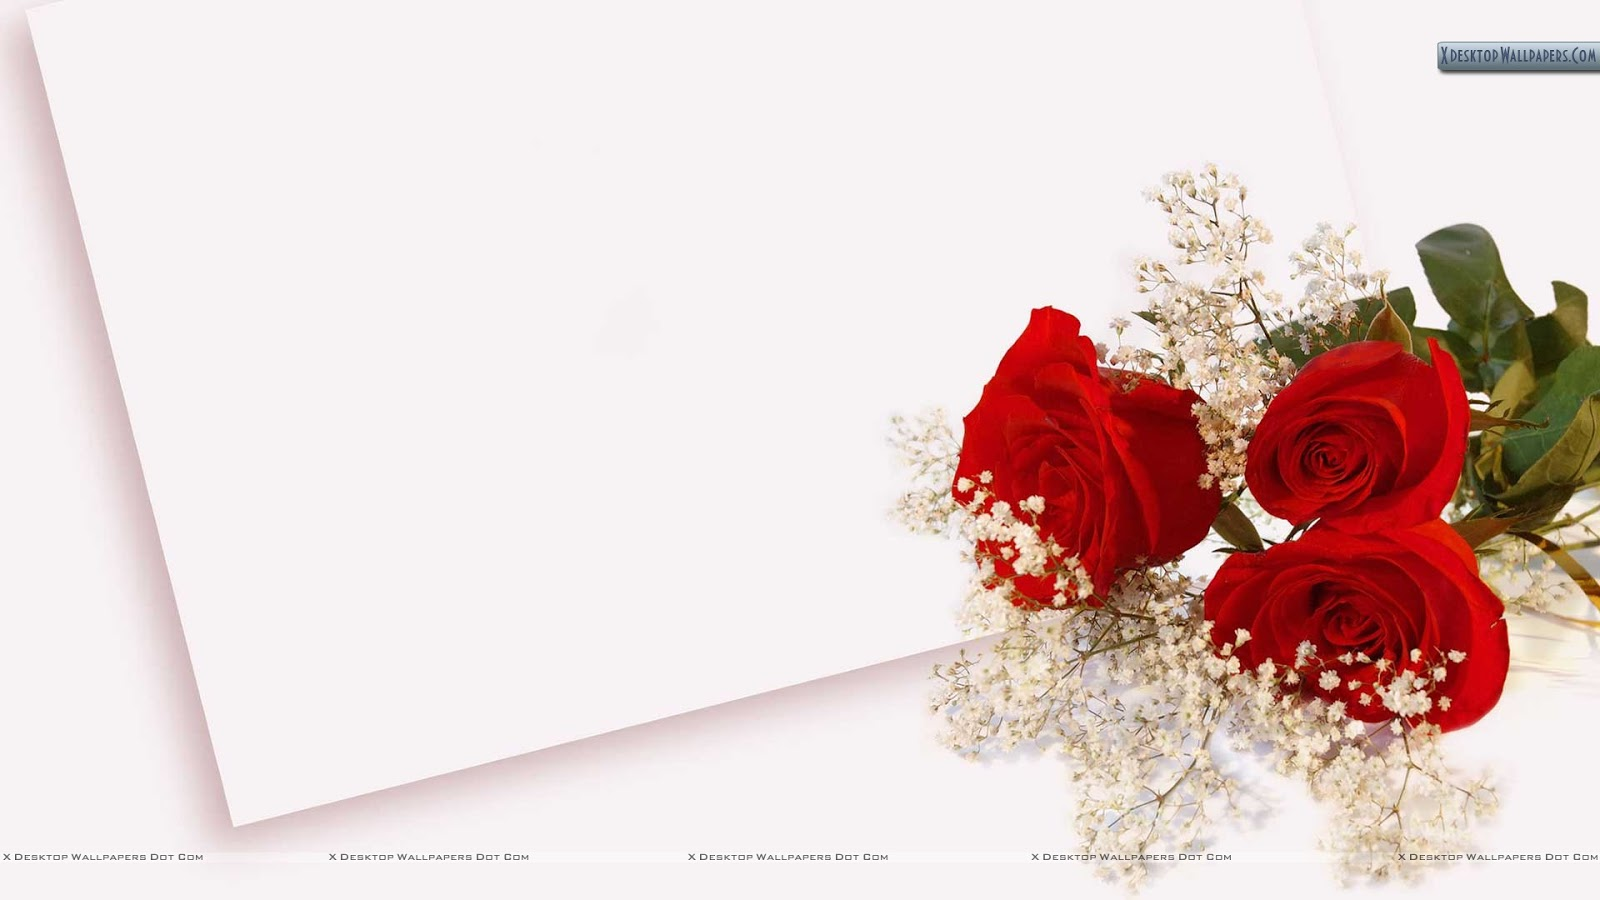 Background Pictures For Wedding Invitations: Background Wedding Pics: Background Wedding